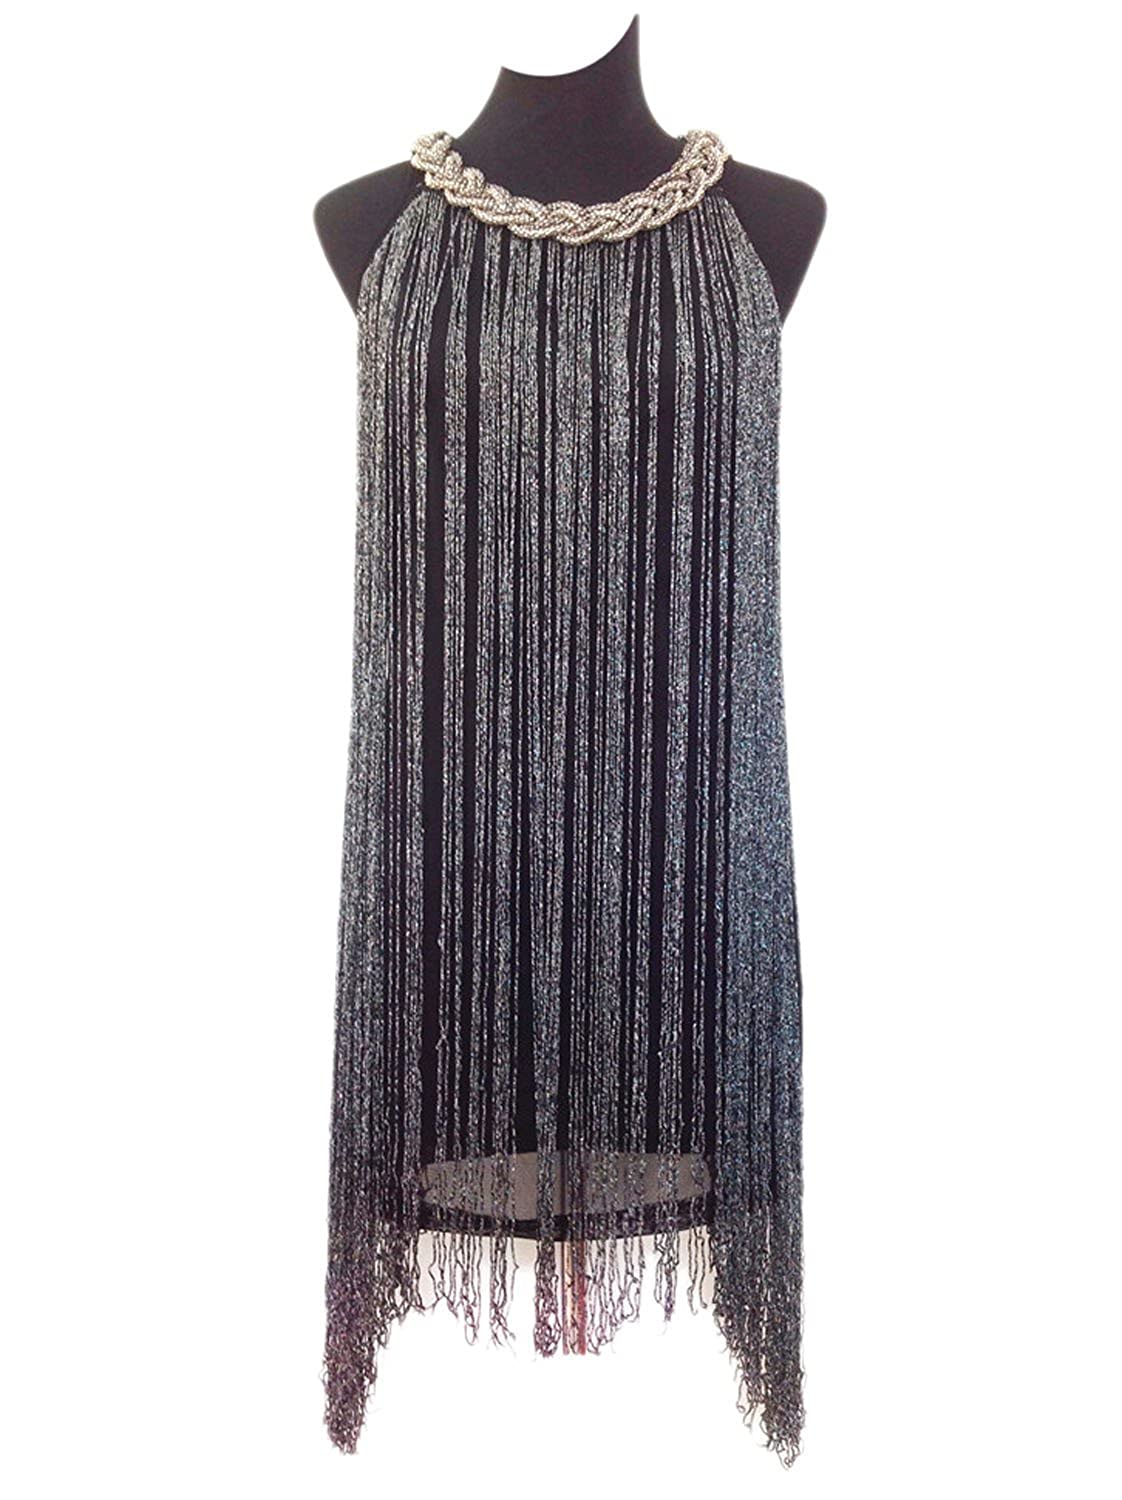 1950s Costumes- Poodle Skirts, Grease, Monroe, Pin Up, I Love Lucy Vijiv Womens 1920s Gatsby Long Swinging Fringe Tassel Flapper Cocktail Dress $31.99 AT vintagedancer.com